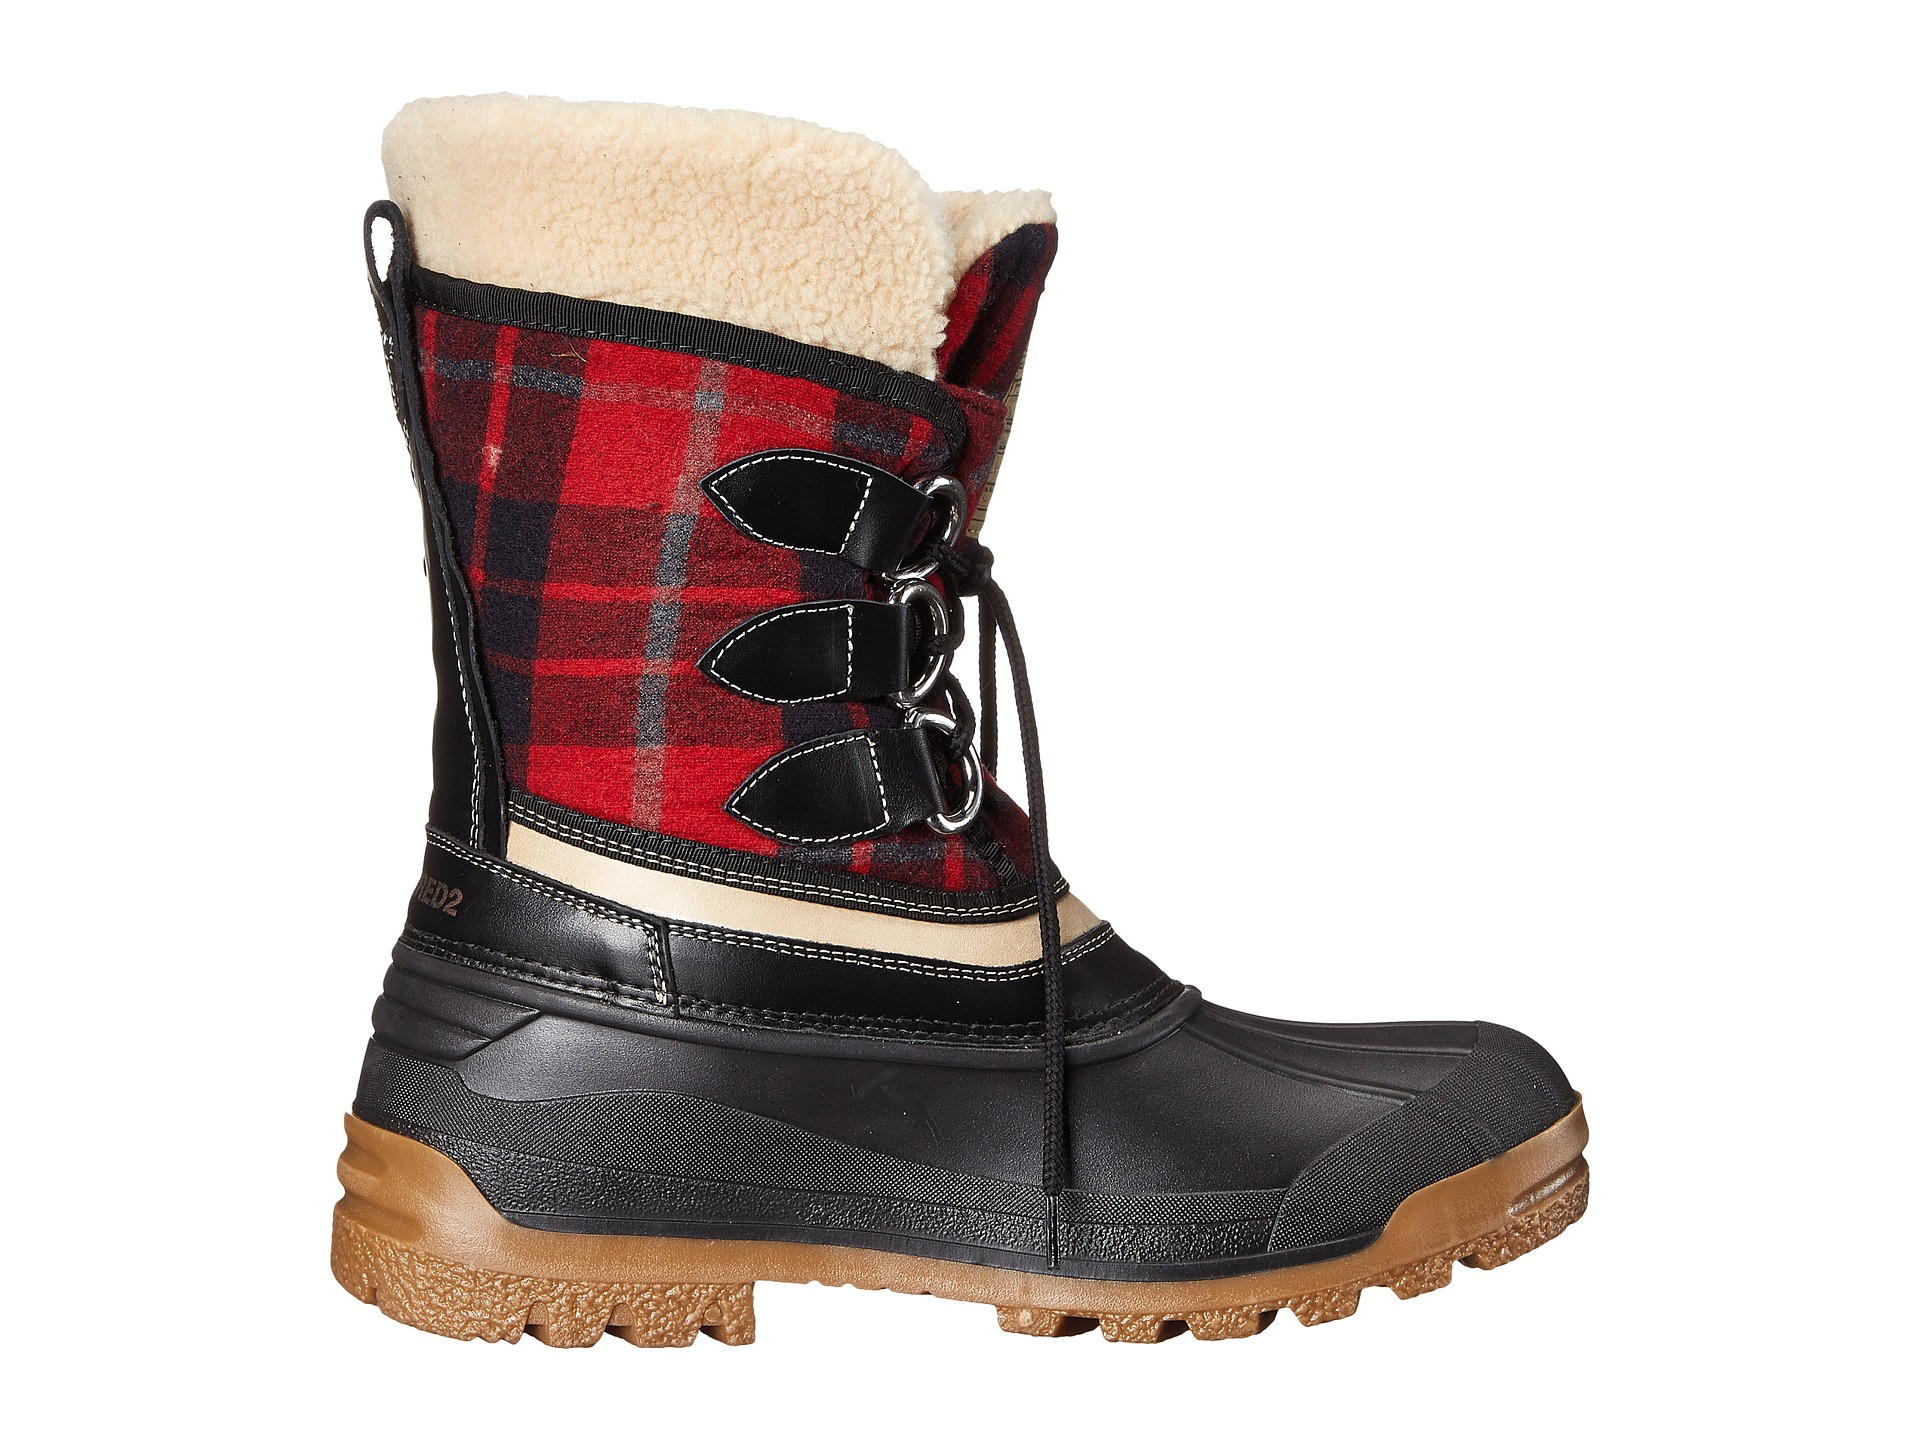 Shop Timberland women's boots, shoes, clothing & accessories at our official US online store today. Design your own boots or boat shoes & shop our collection.